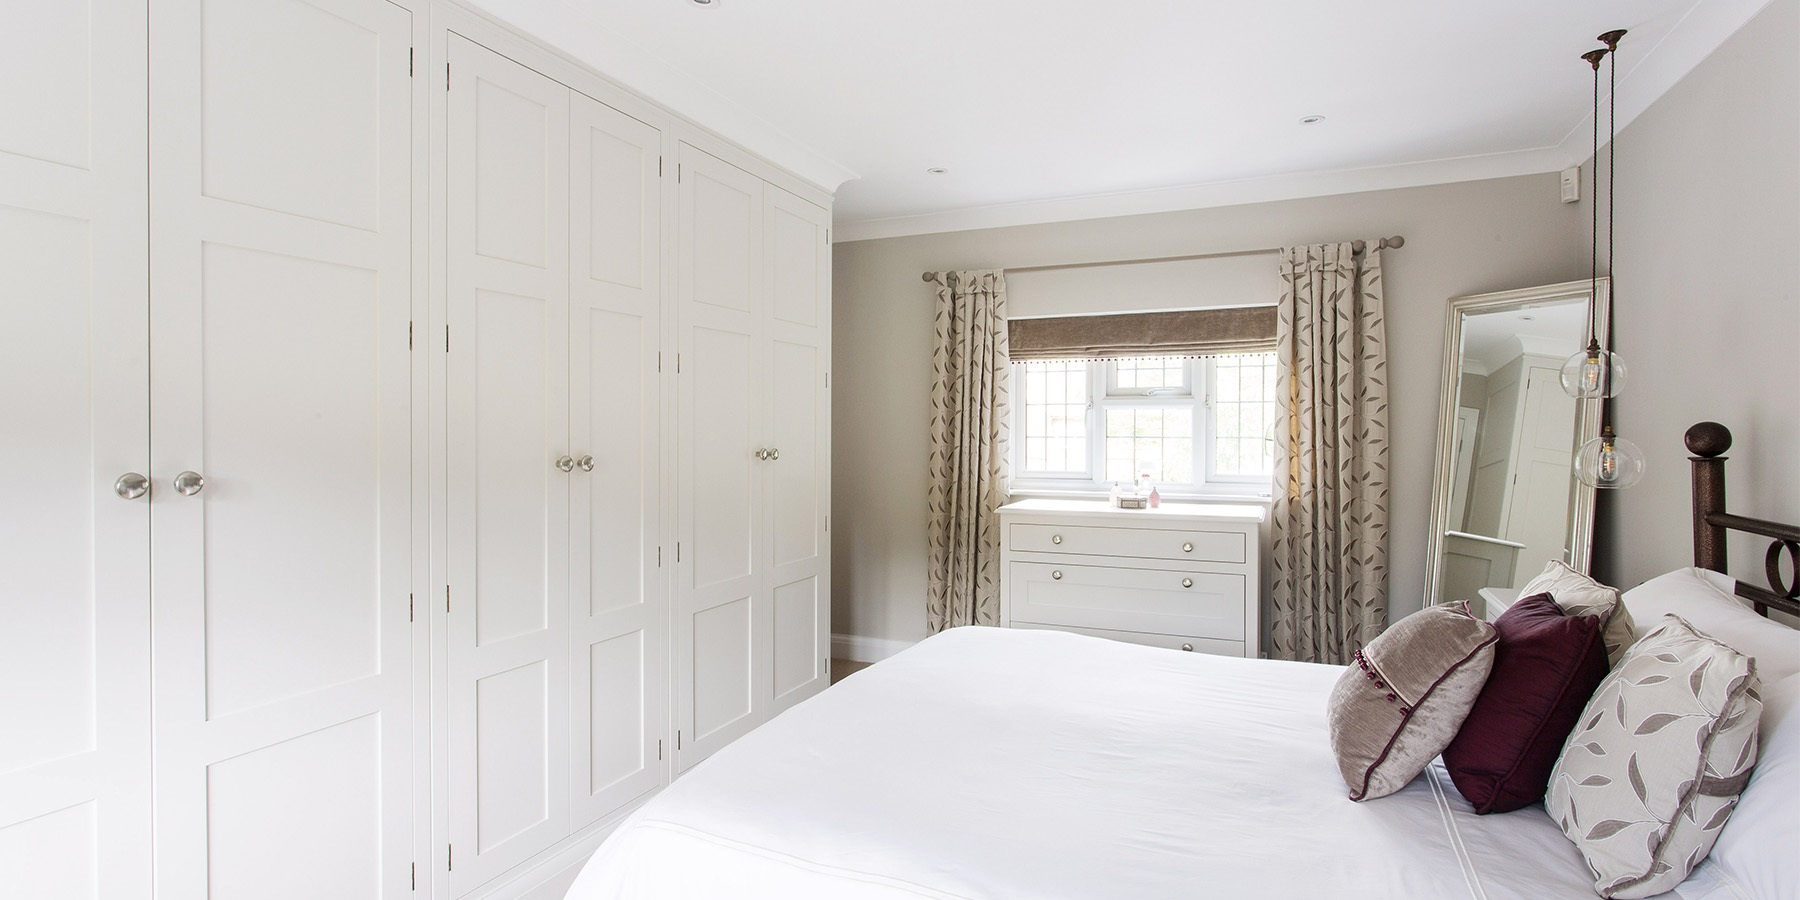 Burlanes Bespoke Bedroom Furniture - Bespoke, made-to-measure handmade bedroom furniture and fitted wardrobes